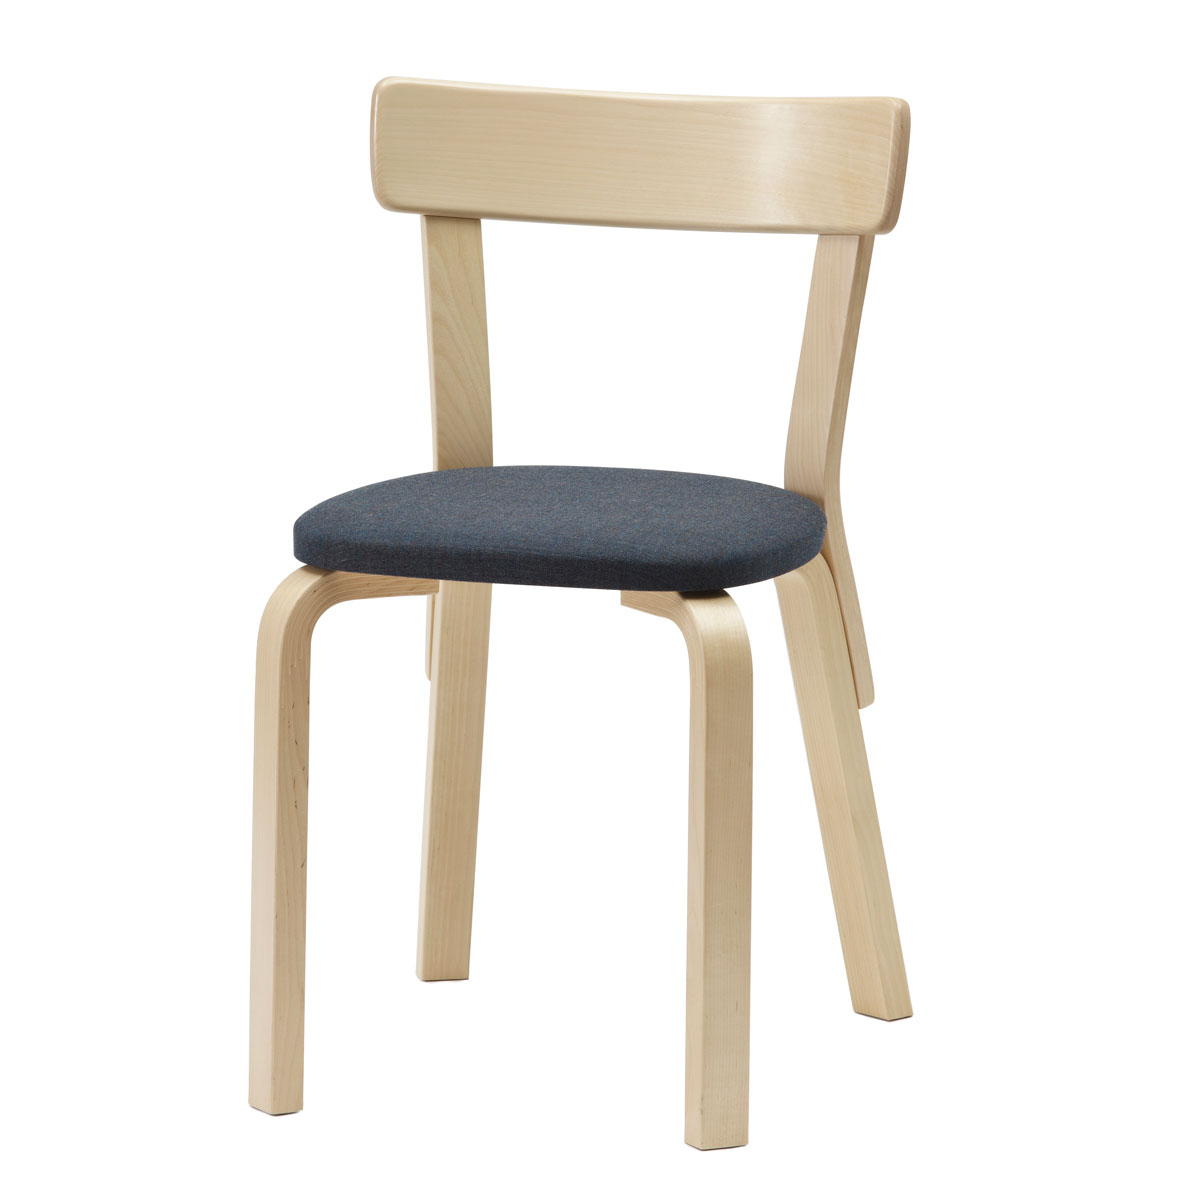 alvar aalto furniture. Artek Alvar Aalto - Chair 69 Birch Legs With Upholstered Seat Click To Enlarge Furniture